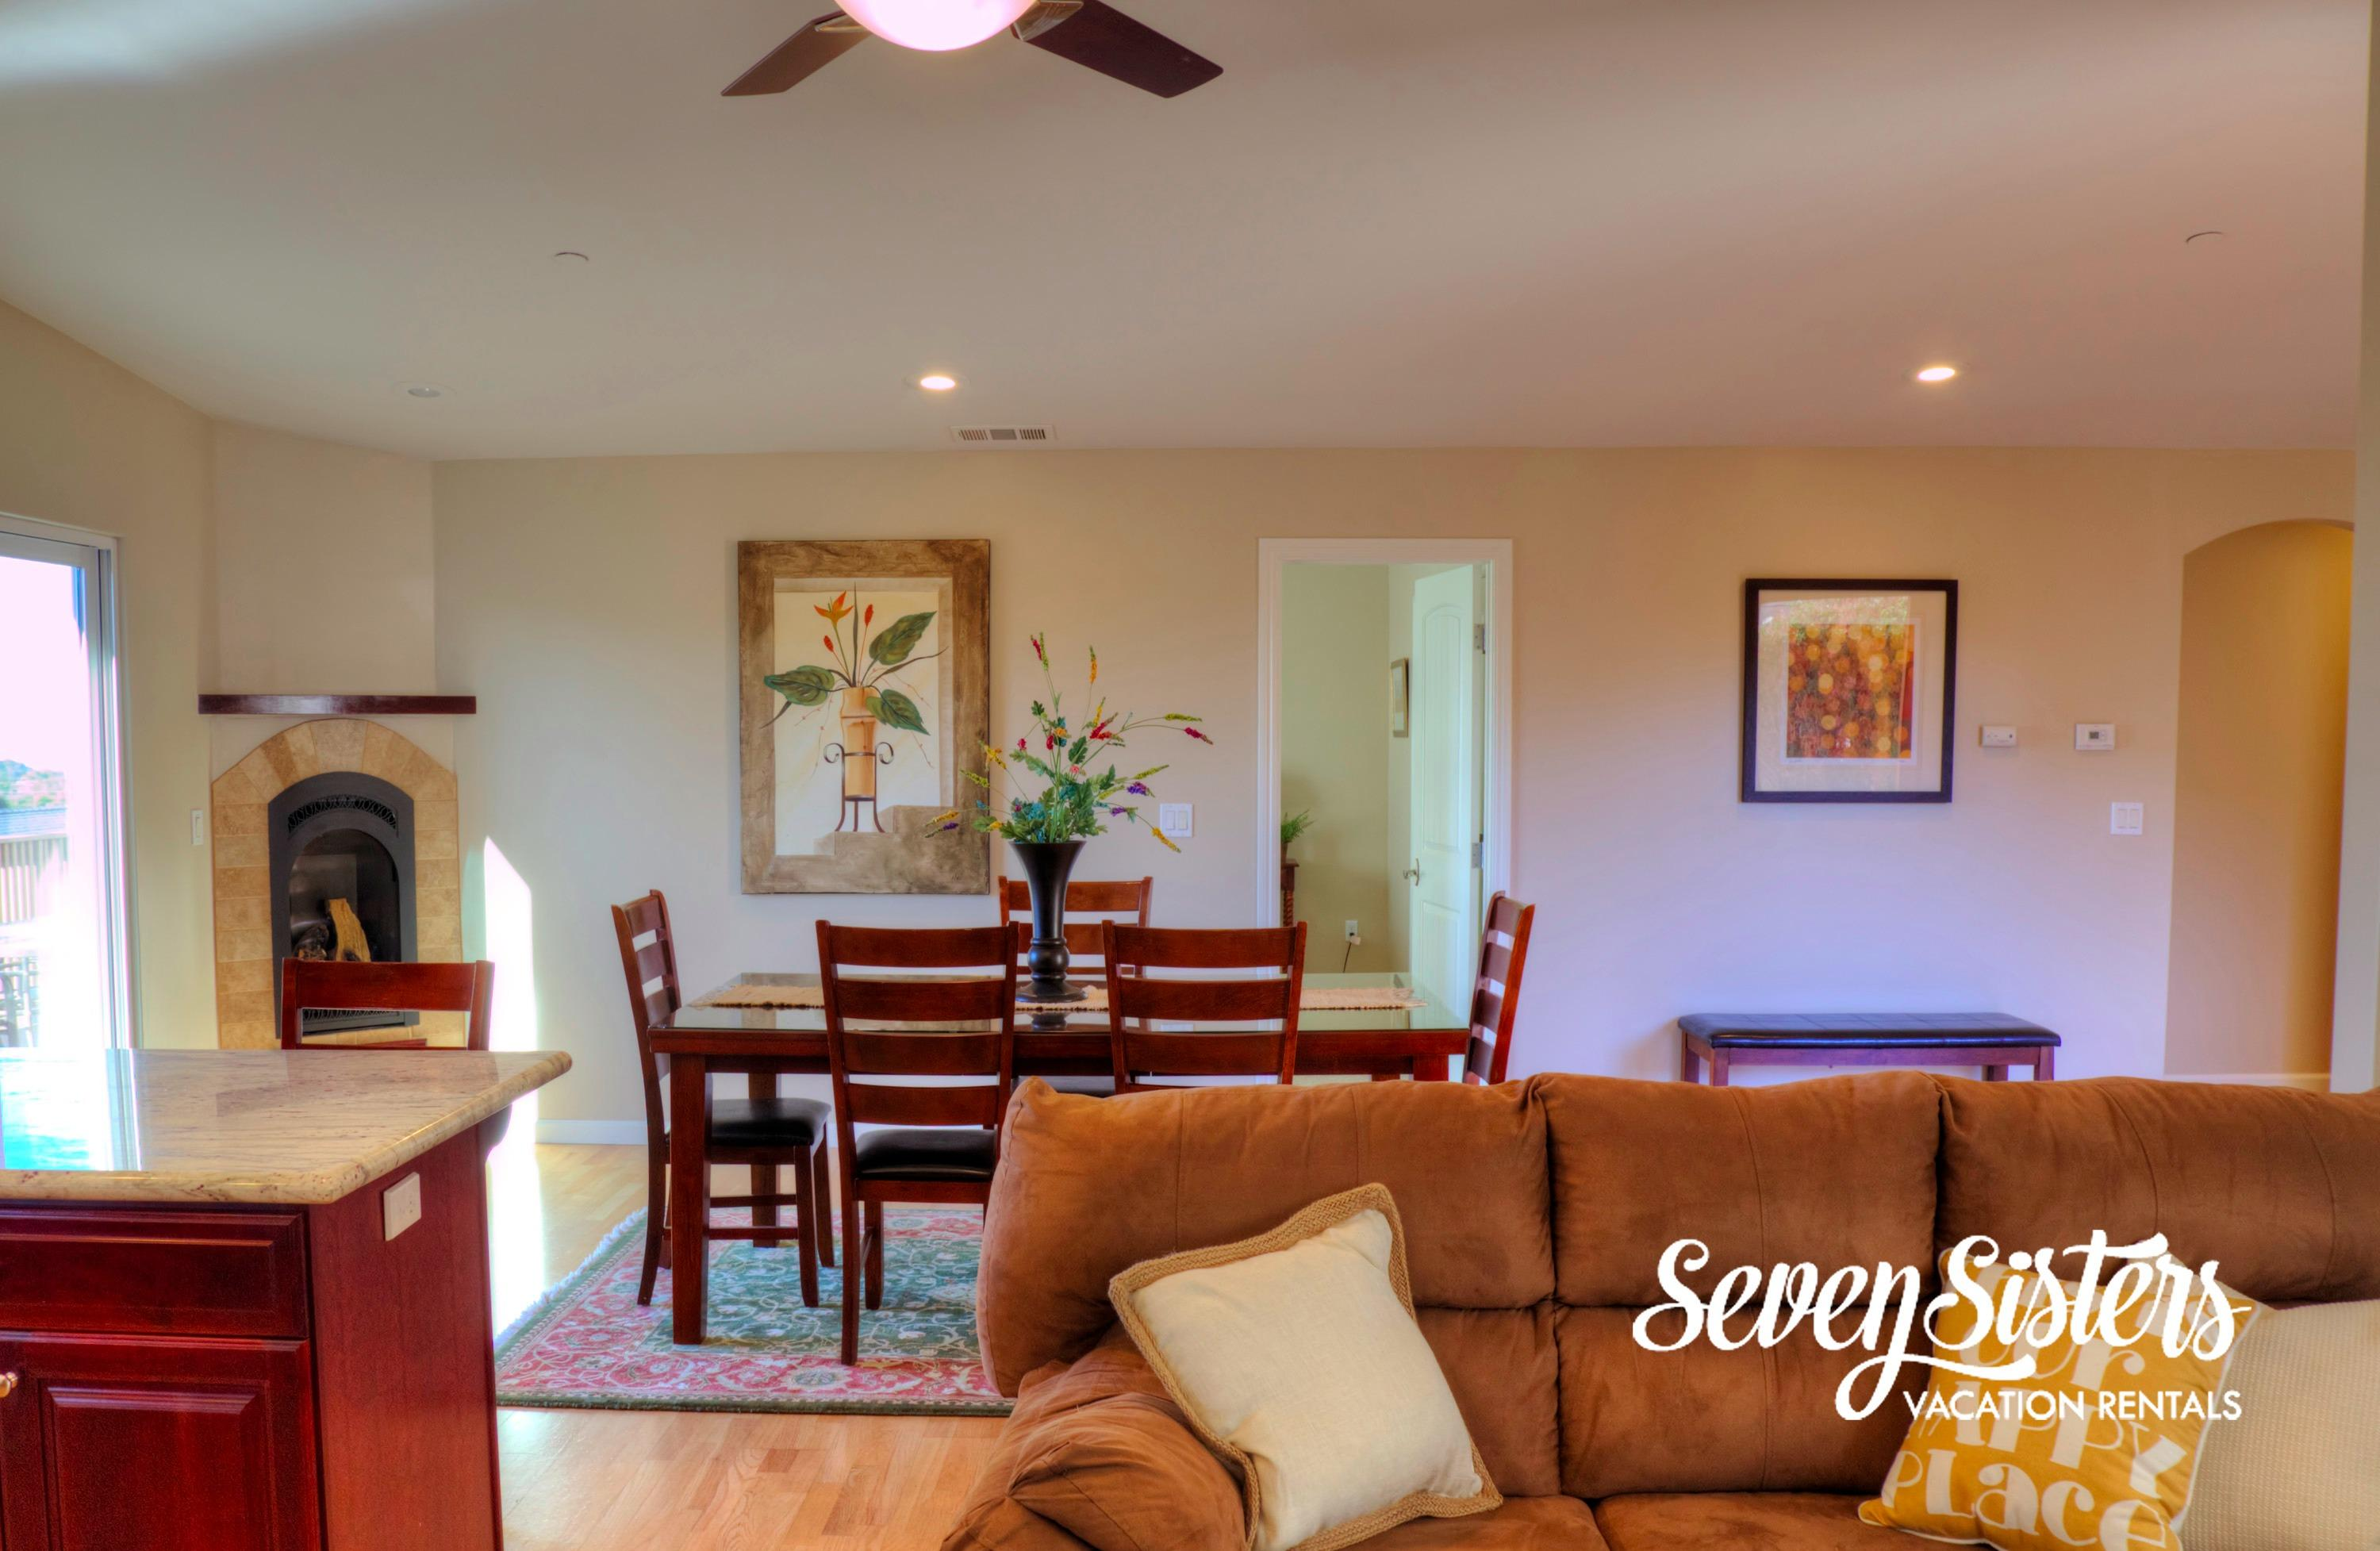 Seven Sisters Vacation Rentals image 16